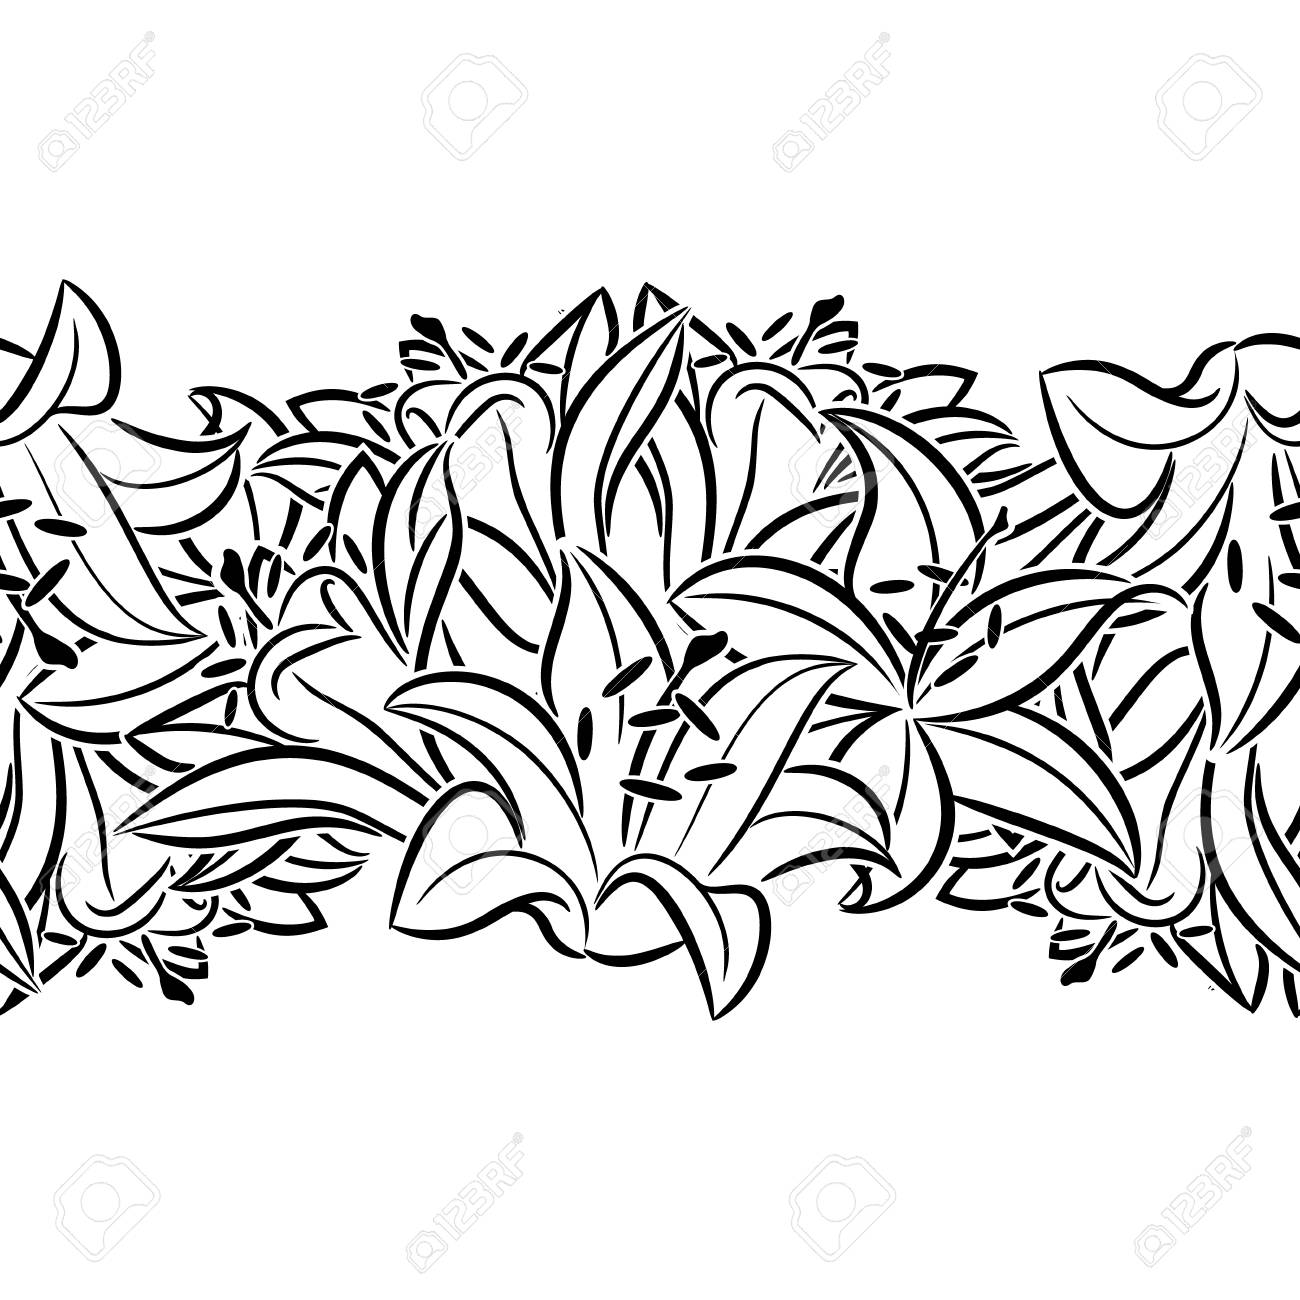 A Seamless Monochrome Pattern Of Flowers For Greeting Cards On